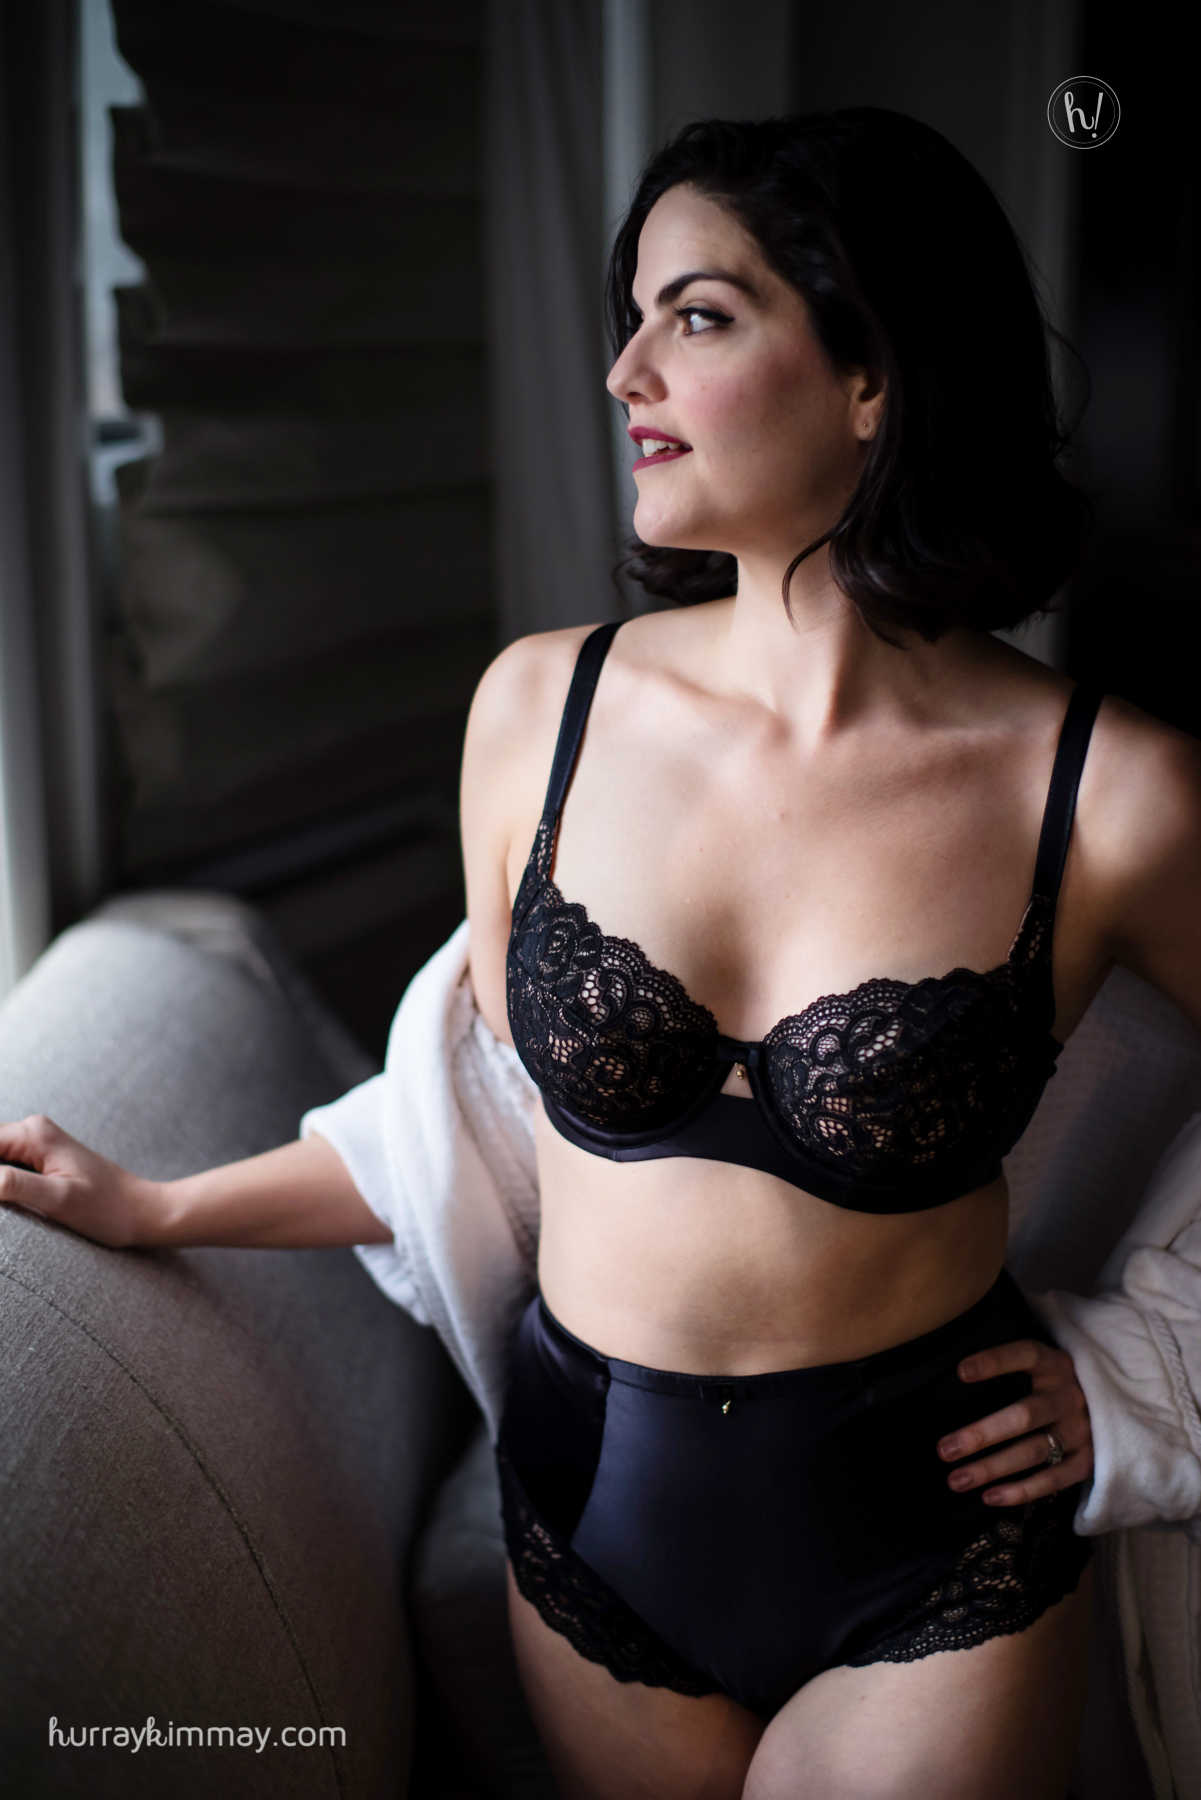 Looking to put more self care into your life? Kimmay shows you how to make your bra routine a self love ritual.